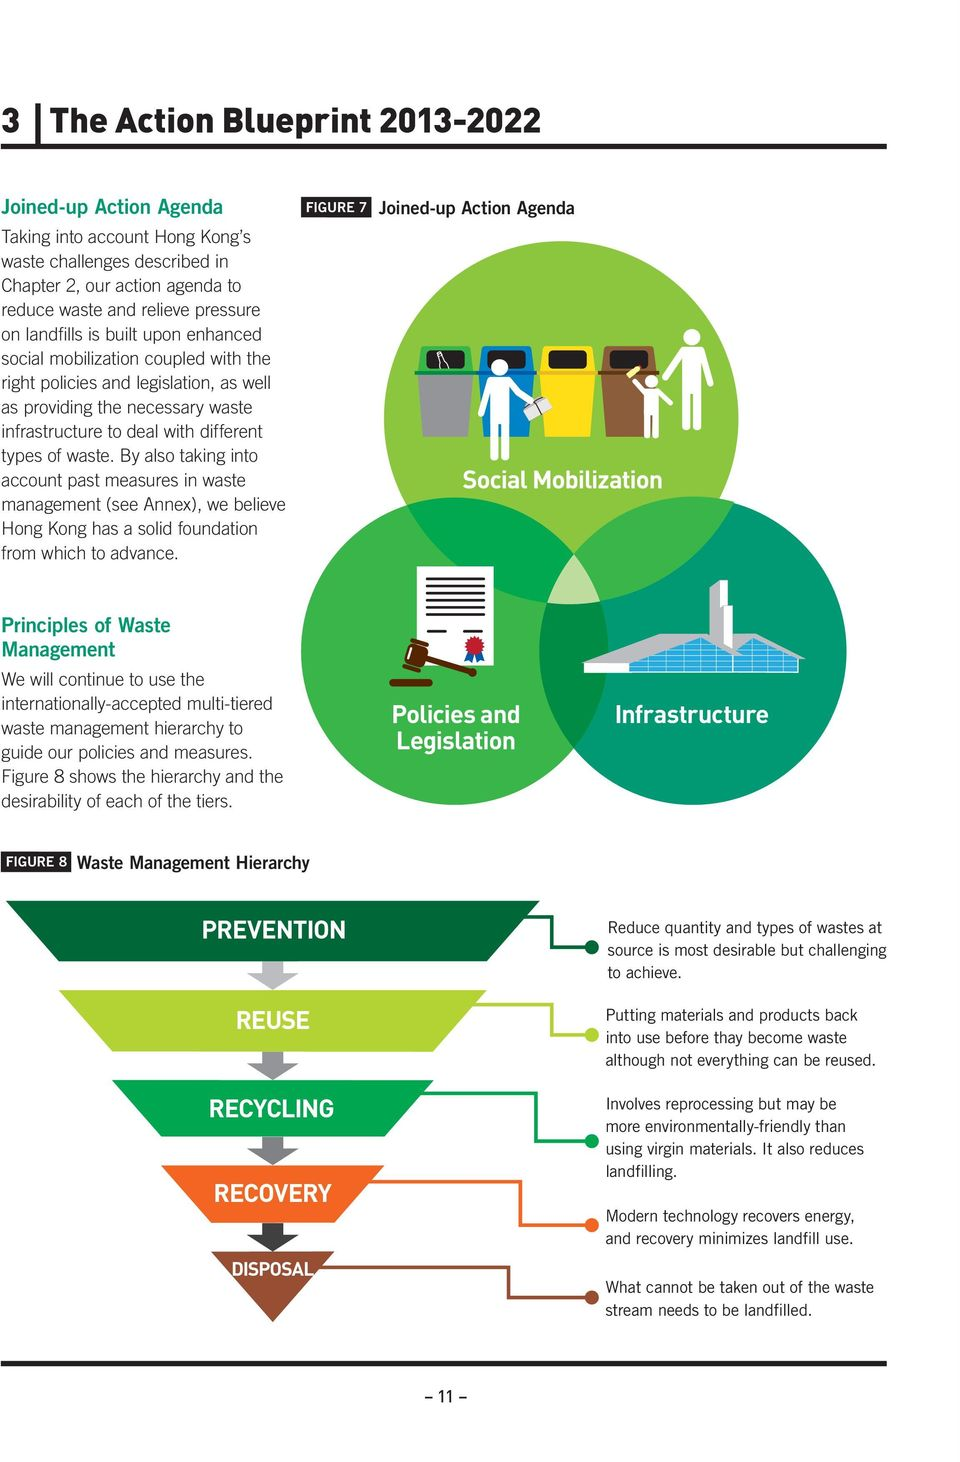 BLUEPRINT FOR SUSTAINABLE USE OF RESOURCES - PDF